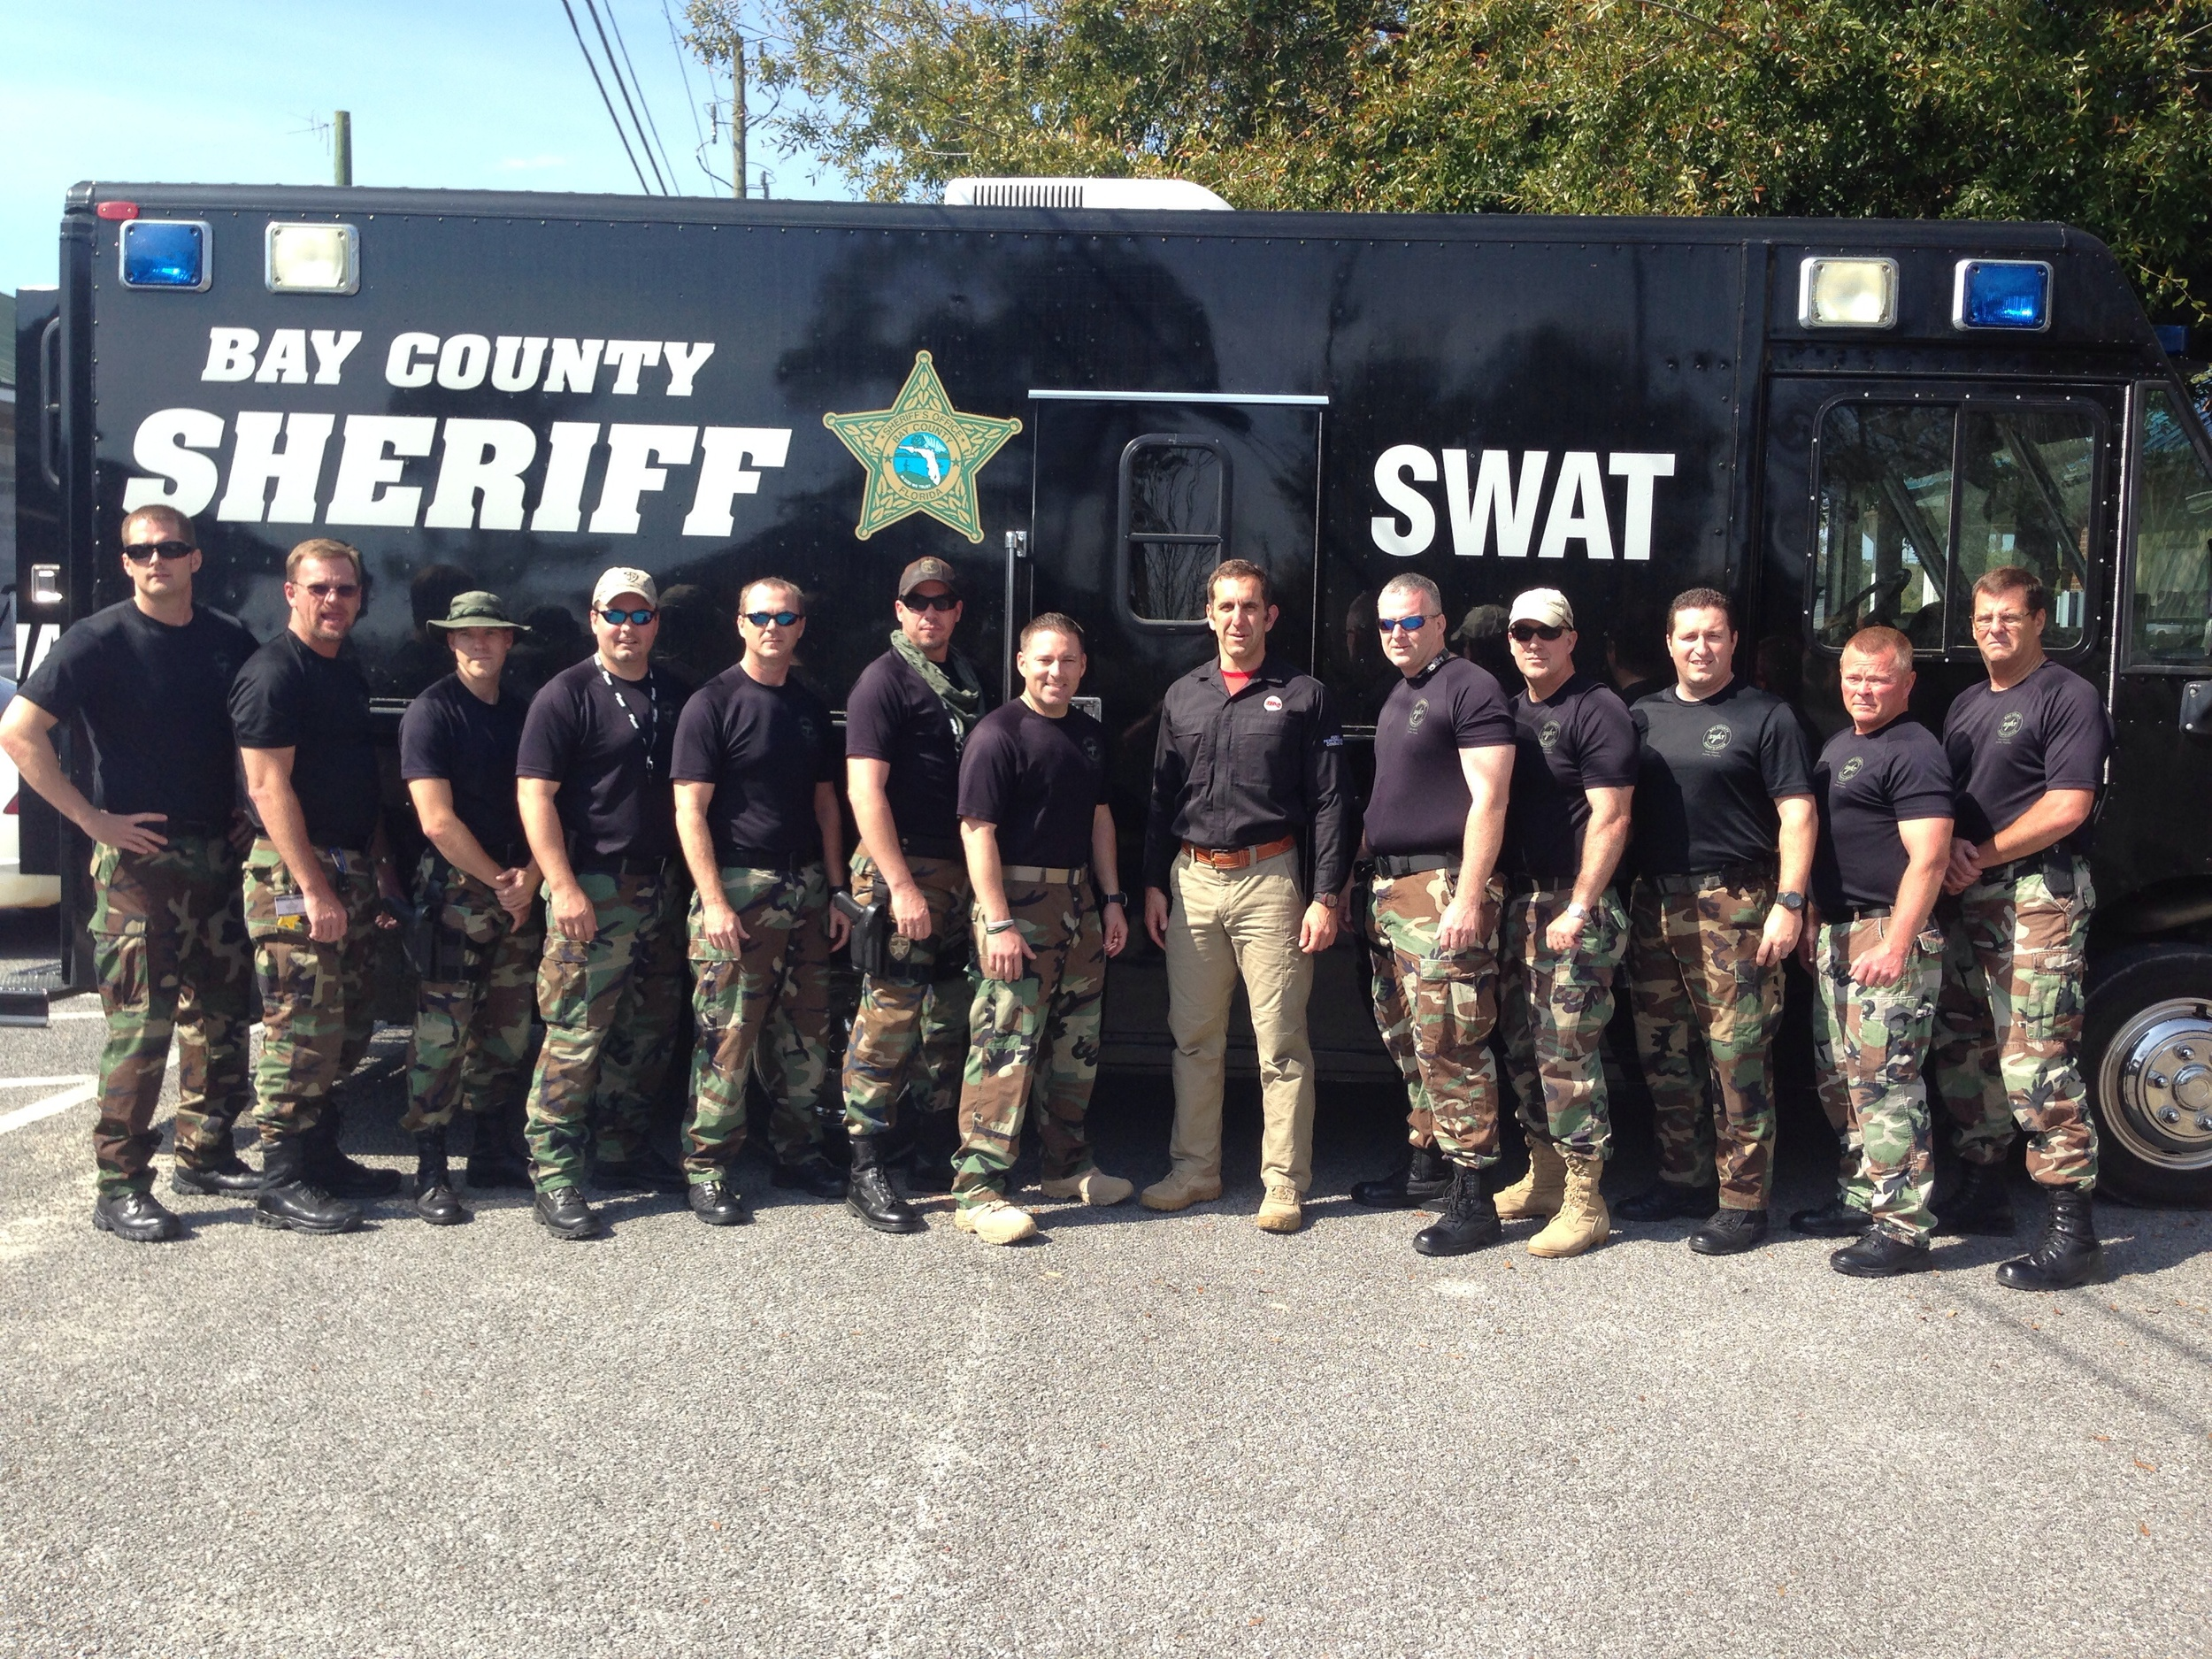 SWAT and HPC. Two acronyms that work well together...